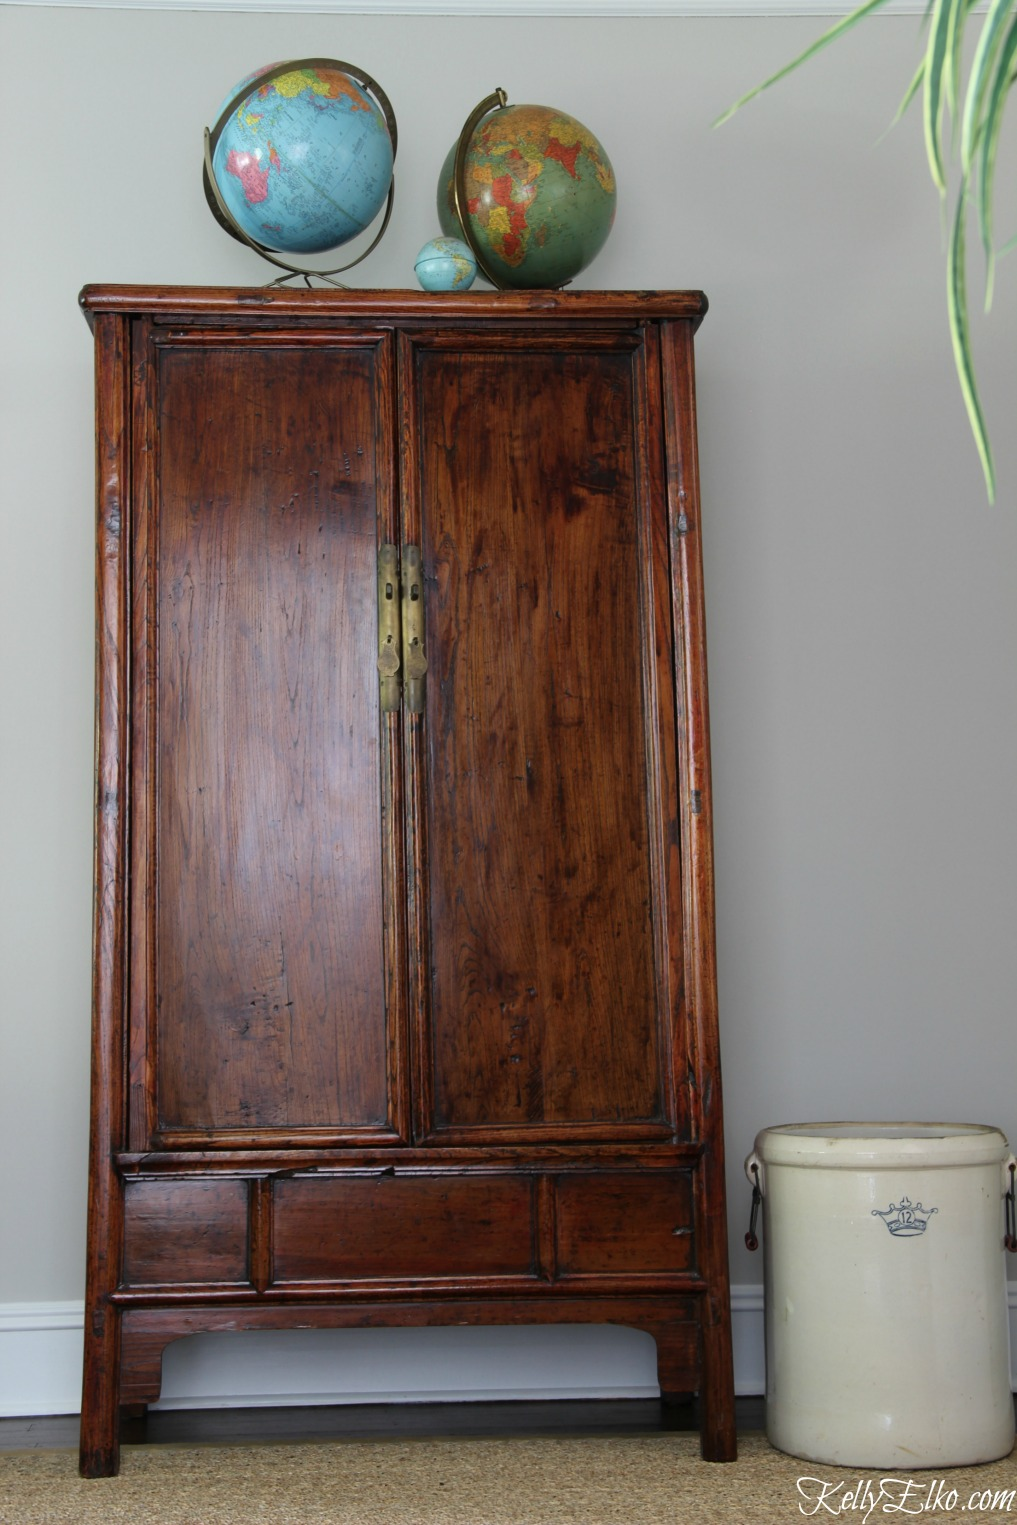 Asian armoire with vintage globes kellyelko.com